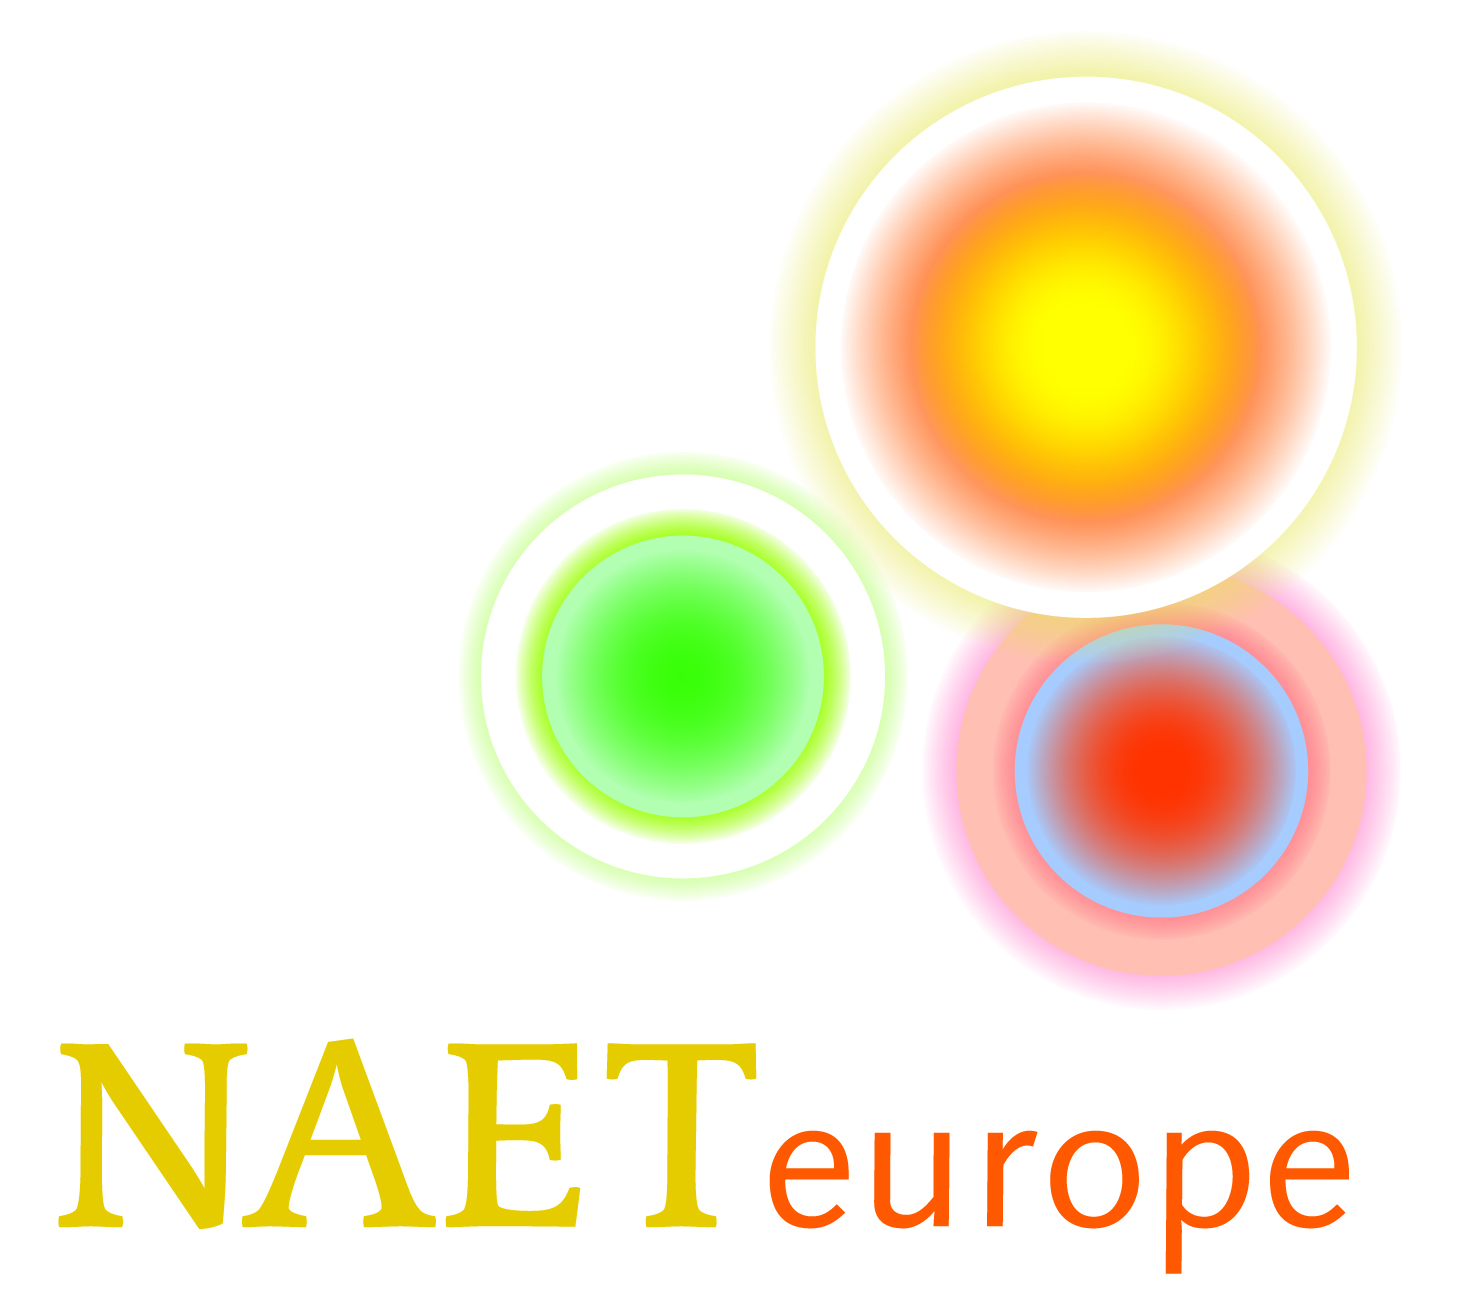 naet_logo_europe_gross allergies Allergies naet logo europe gross